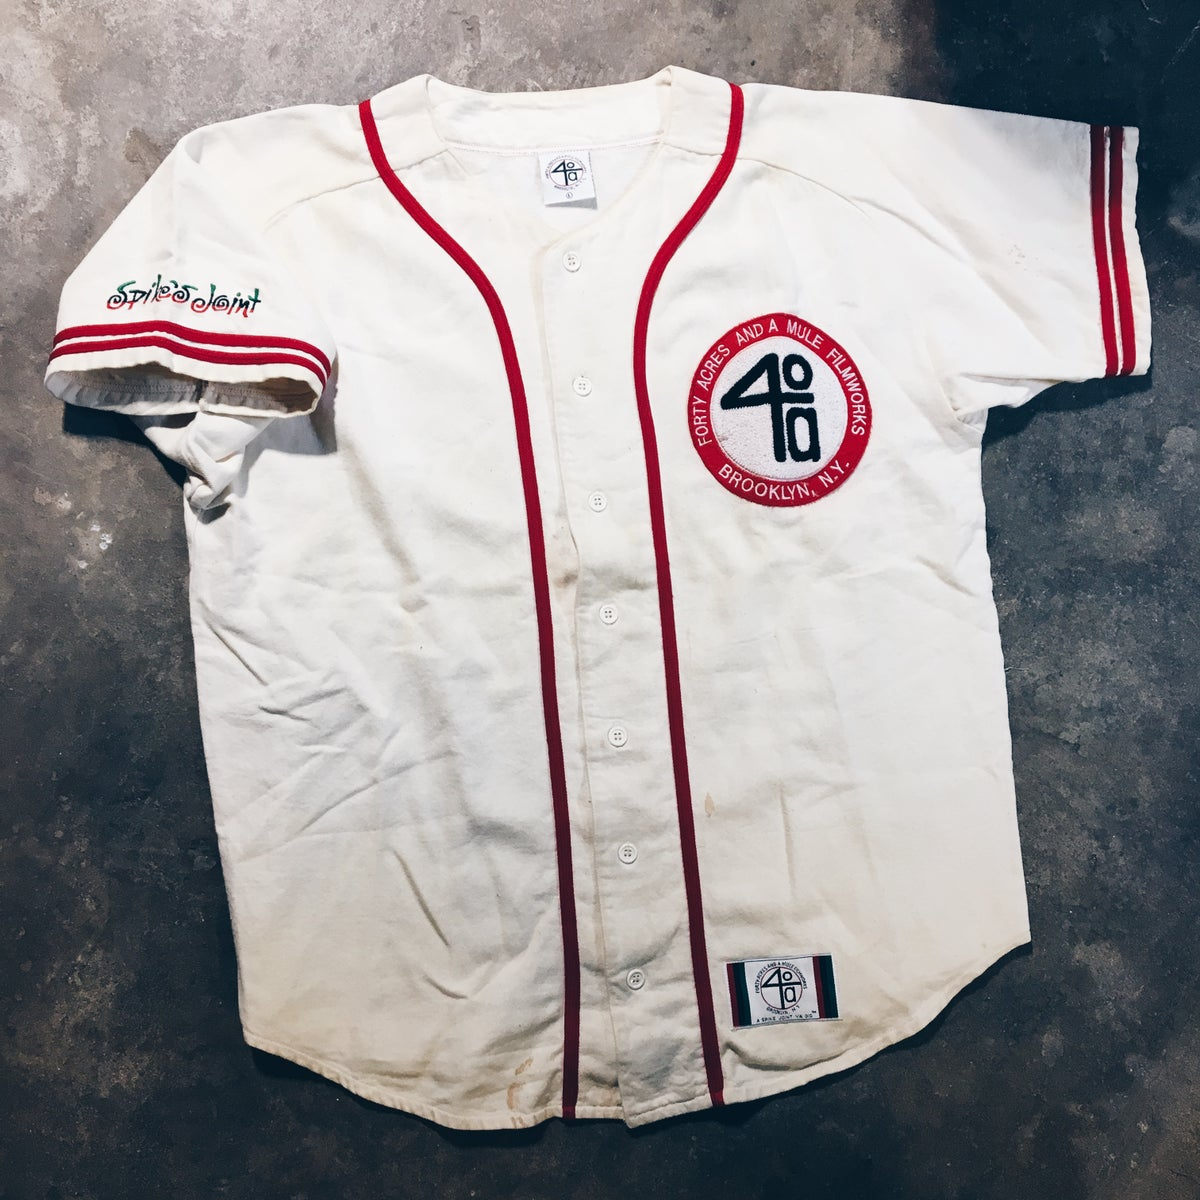 Image of Original 90's Spike Lee 40 Acres And A Mule Jersey.